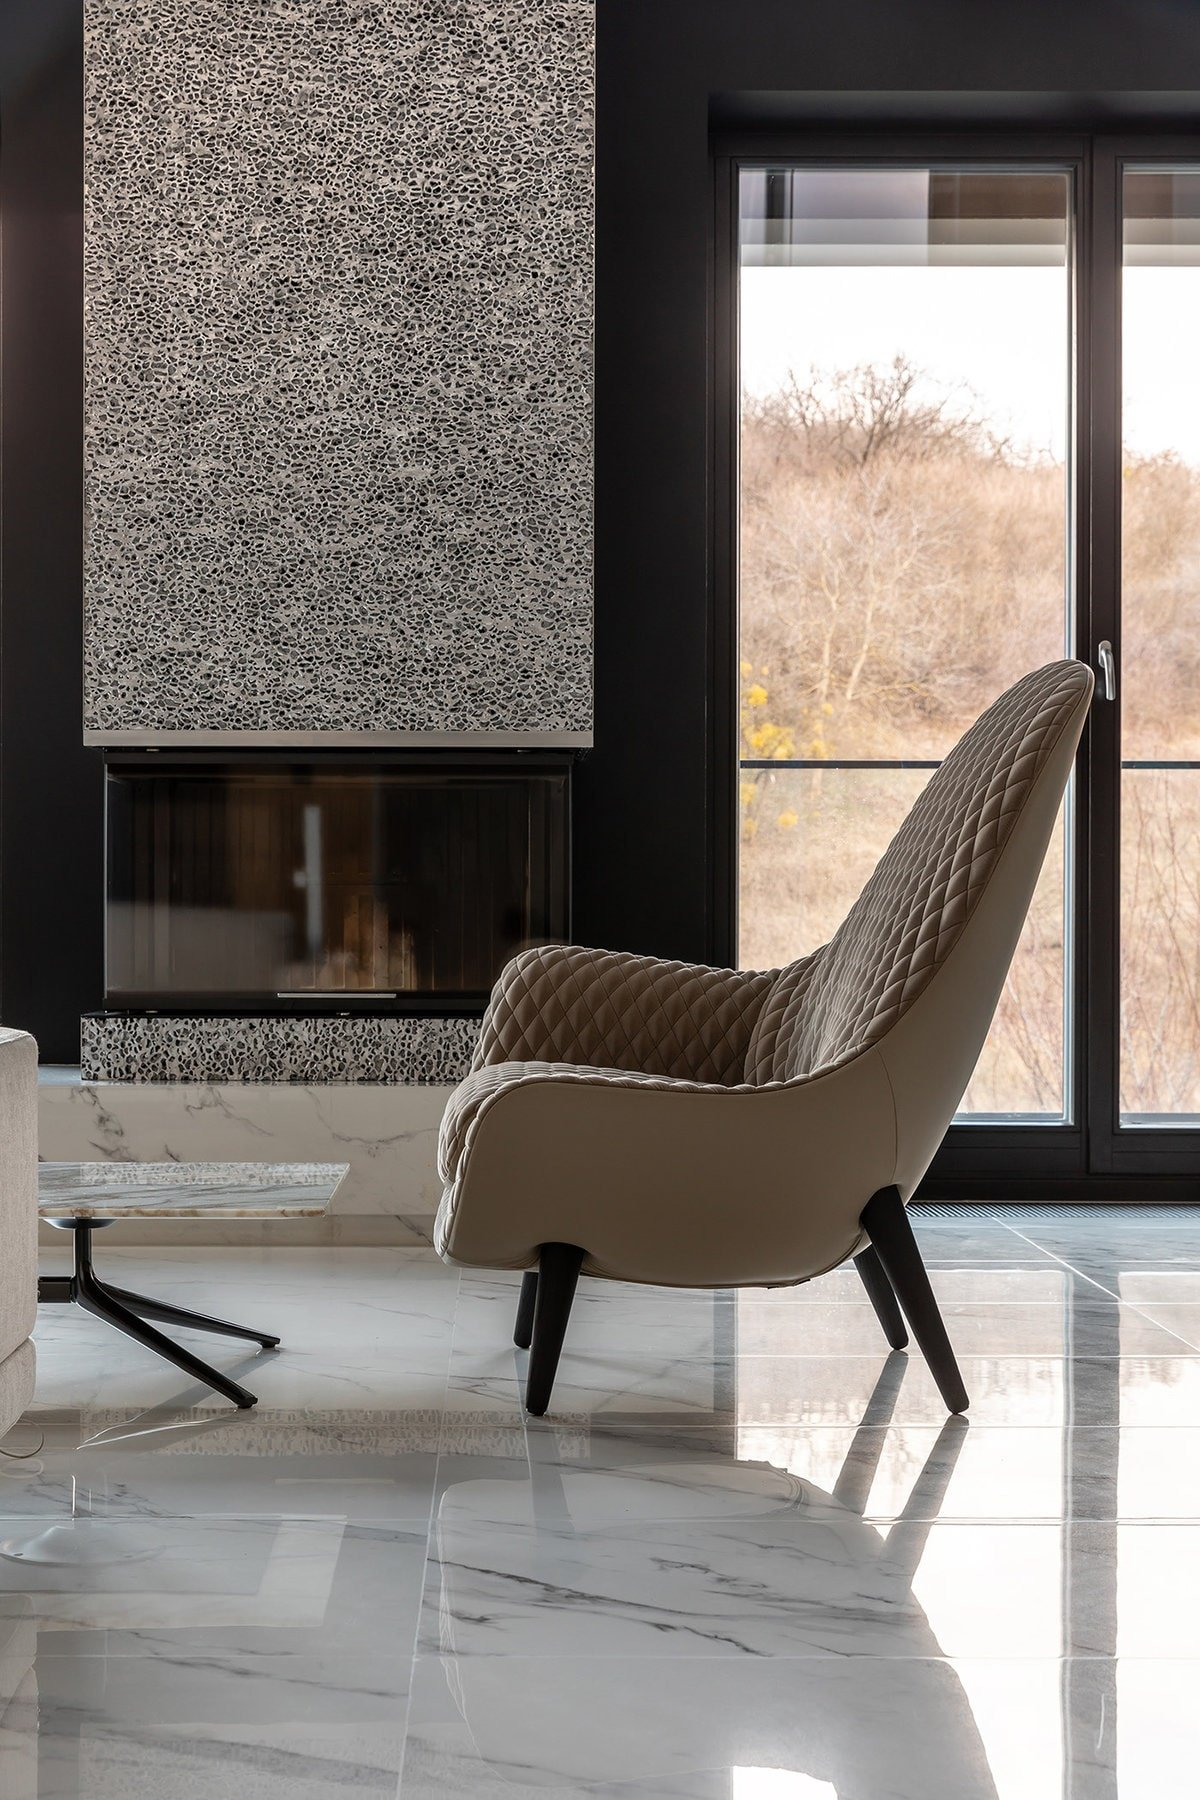 This is a closer look at this charming brown armchair next to the modern fireplace flanked with large glass walls.